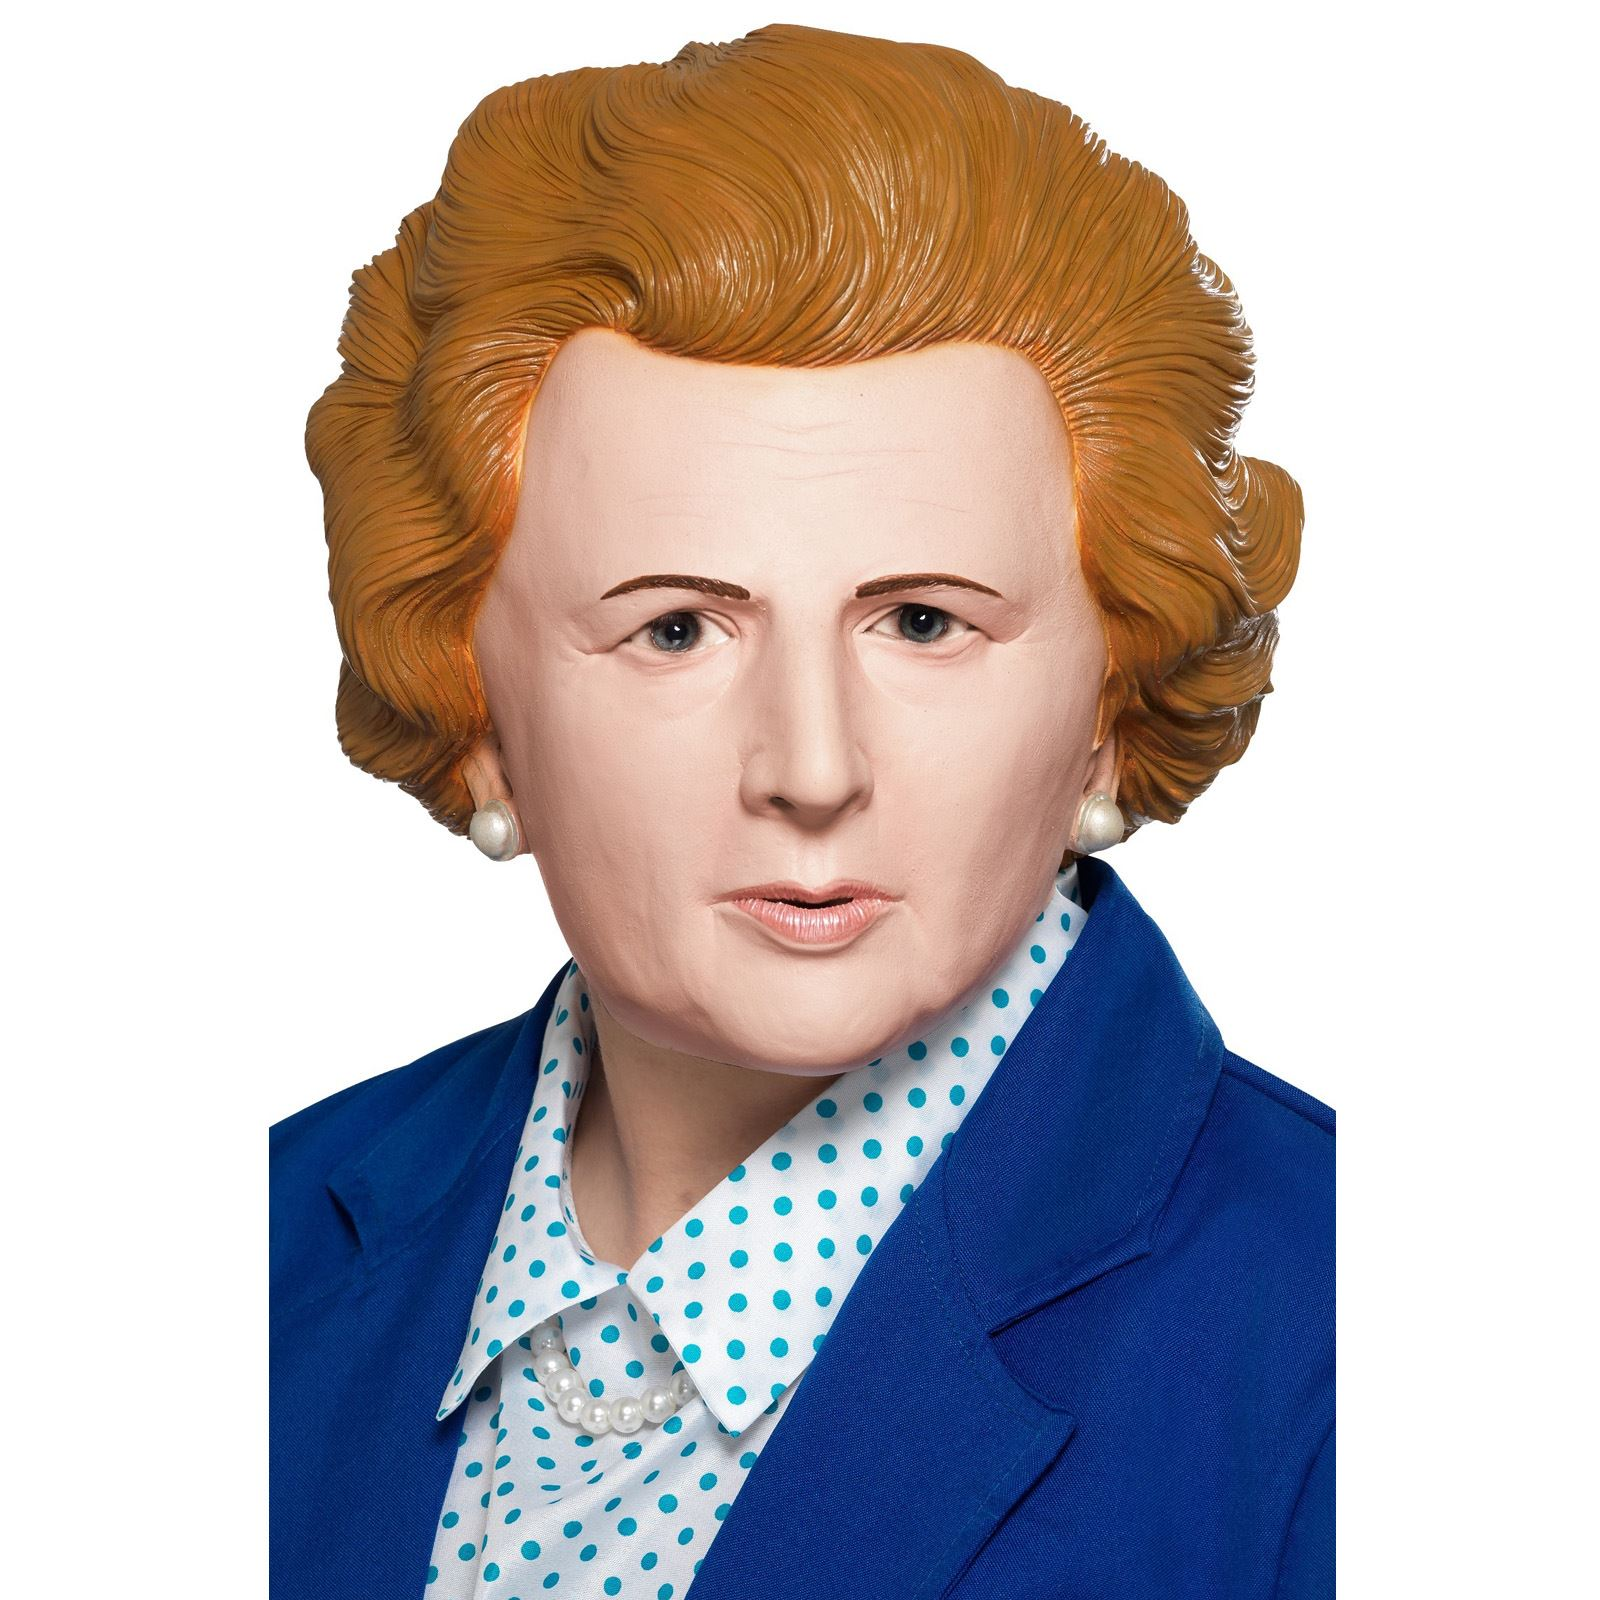 The Iron Lady Face Mask Rubber Realistic Margaret Prime Minister Comedy Politics